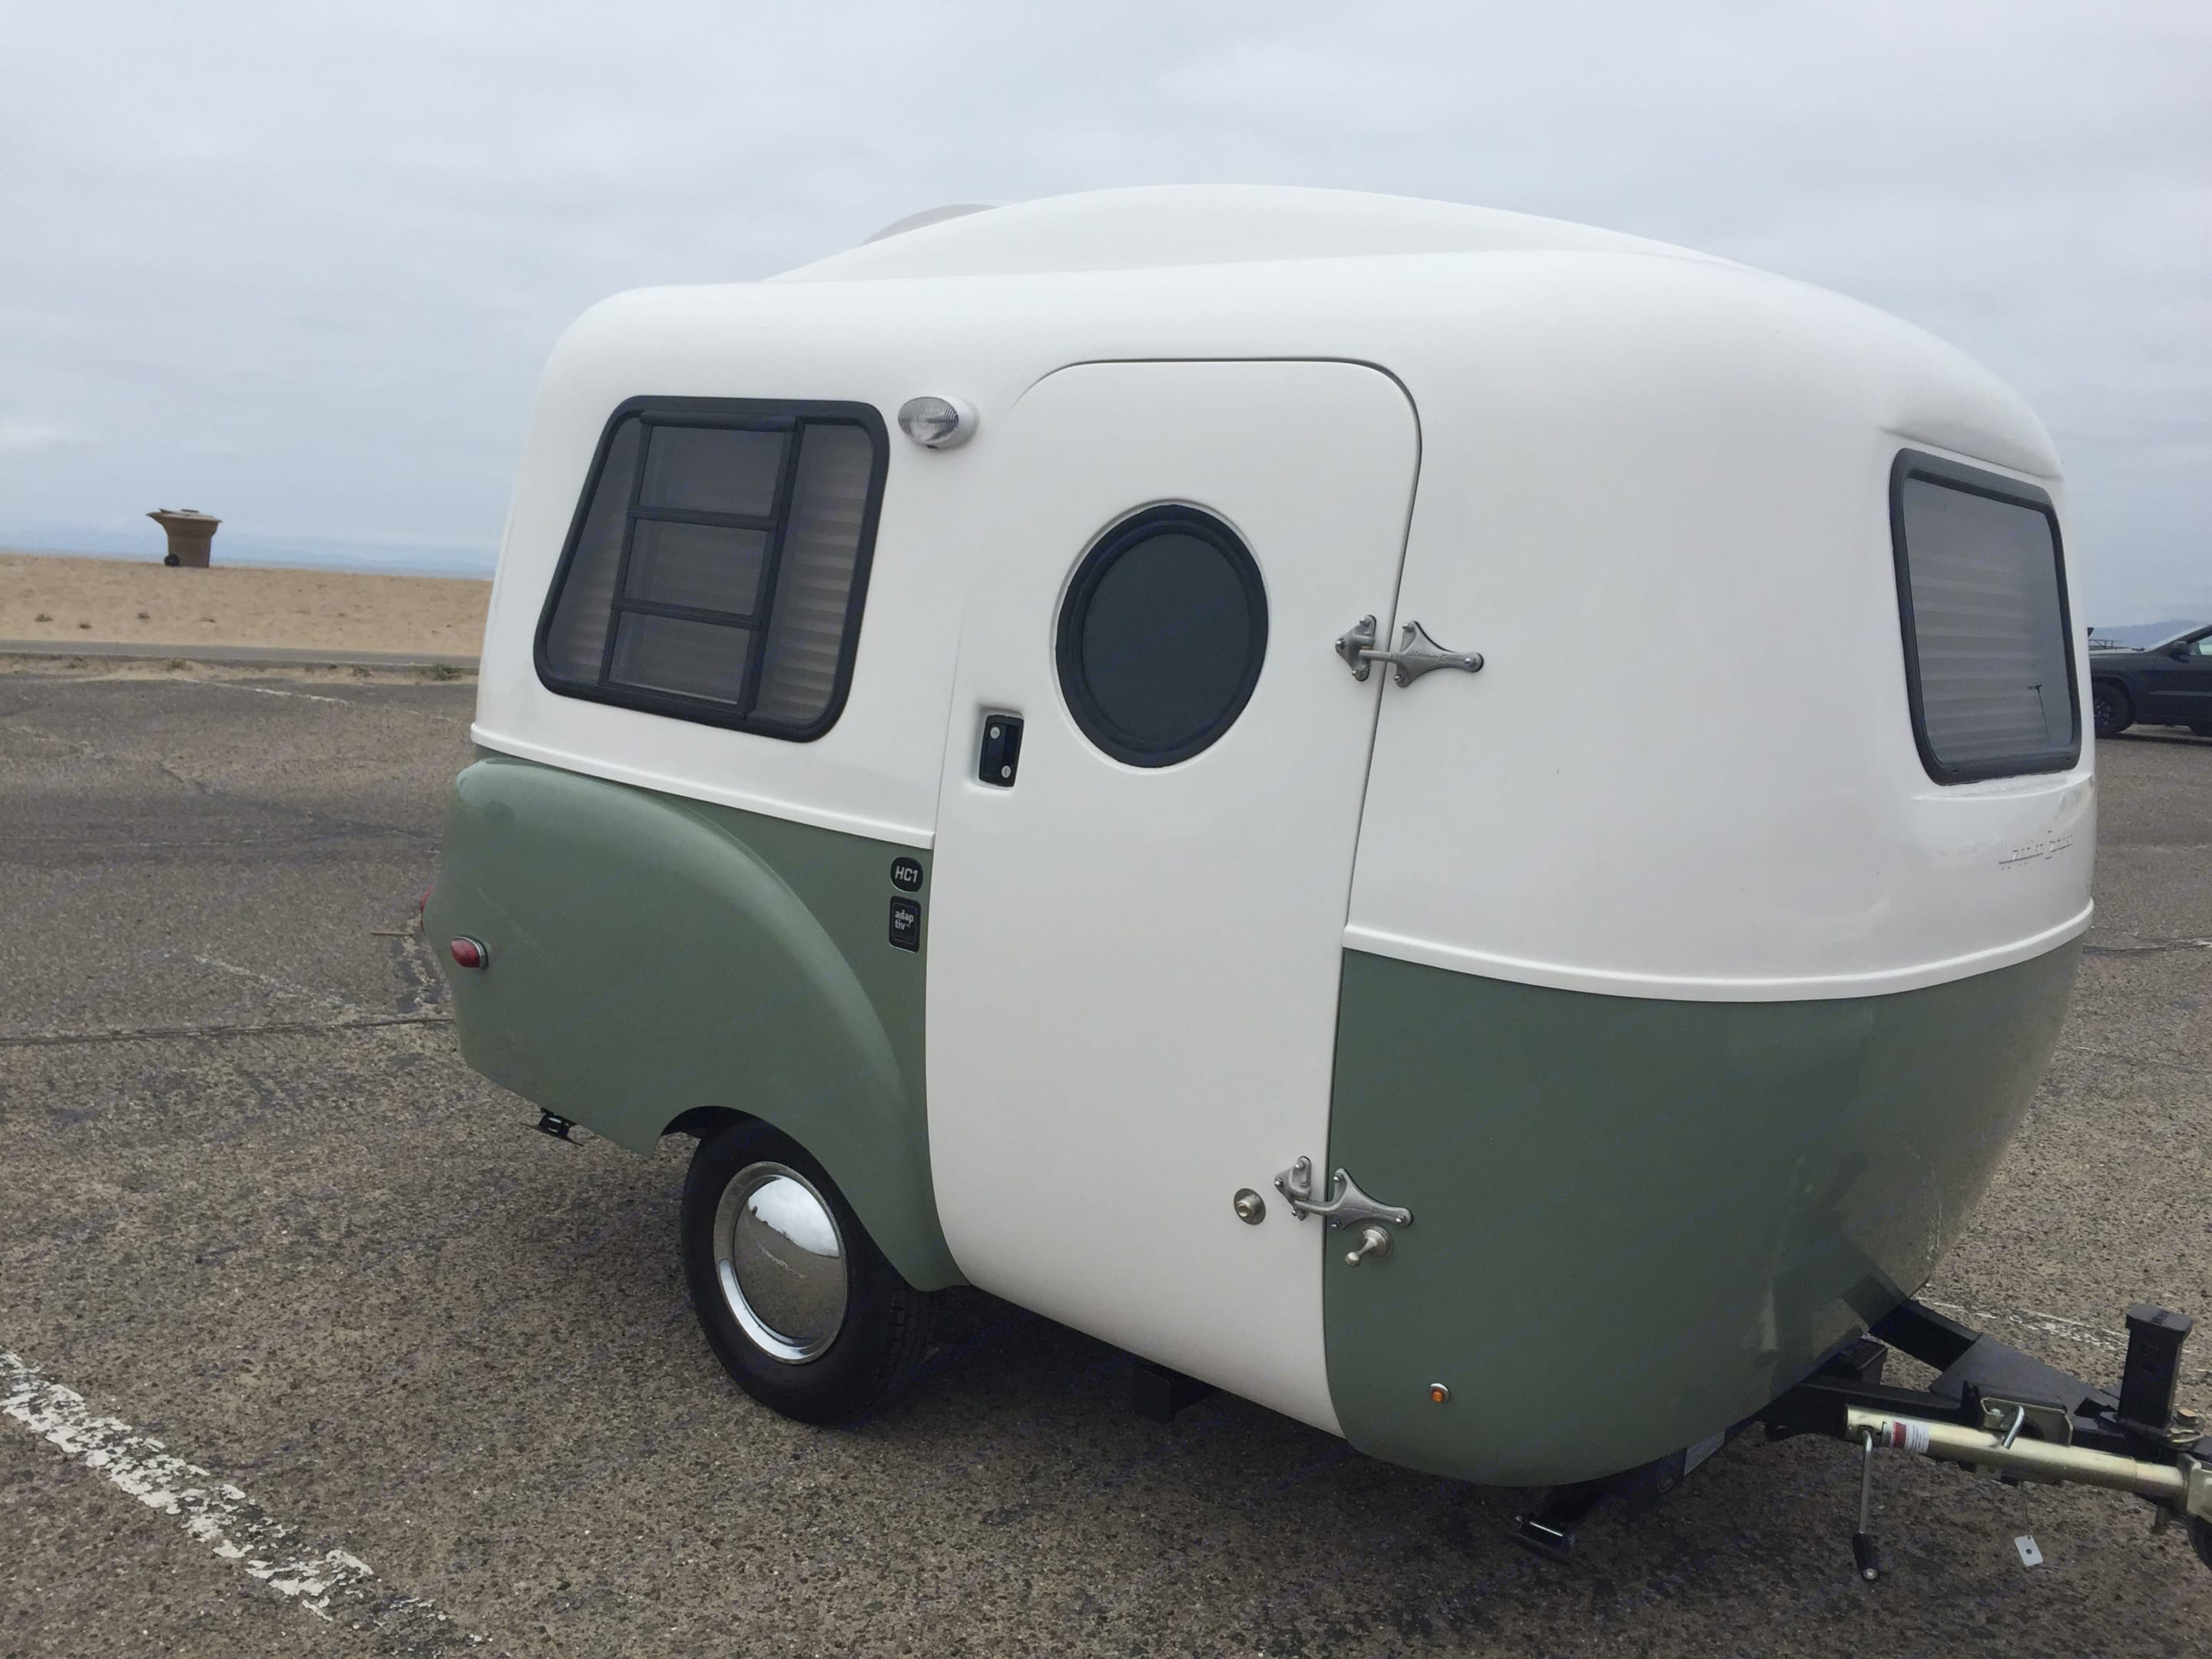 The HC1 has the classic retro look with the feel of a new yacht inside. Easy to tow and gets a lot of attention!. happier camper HC1 2019